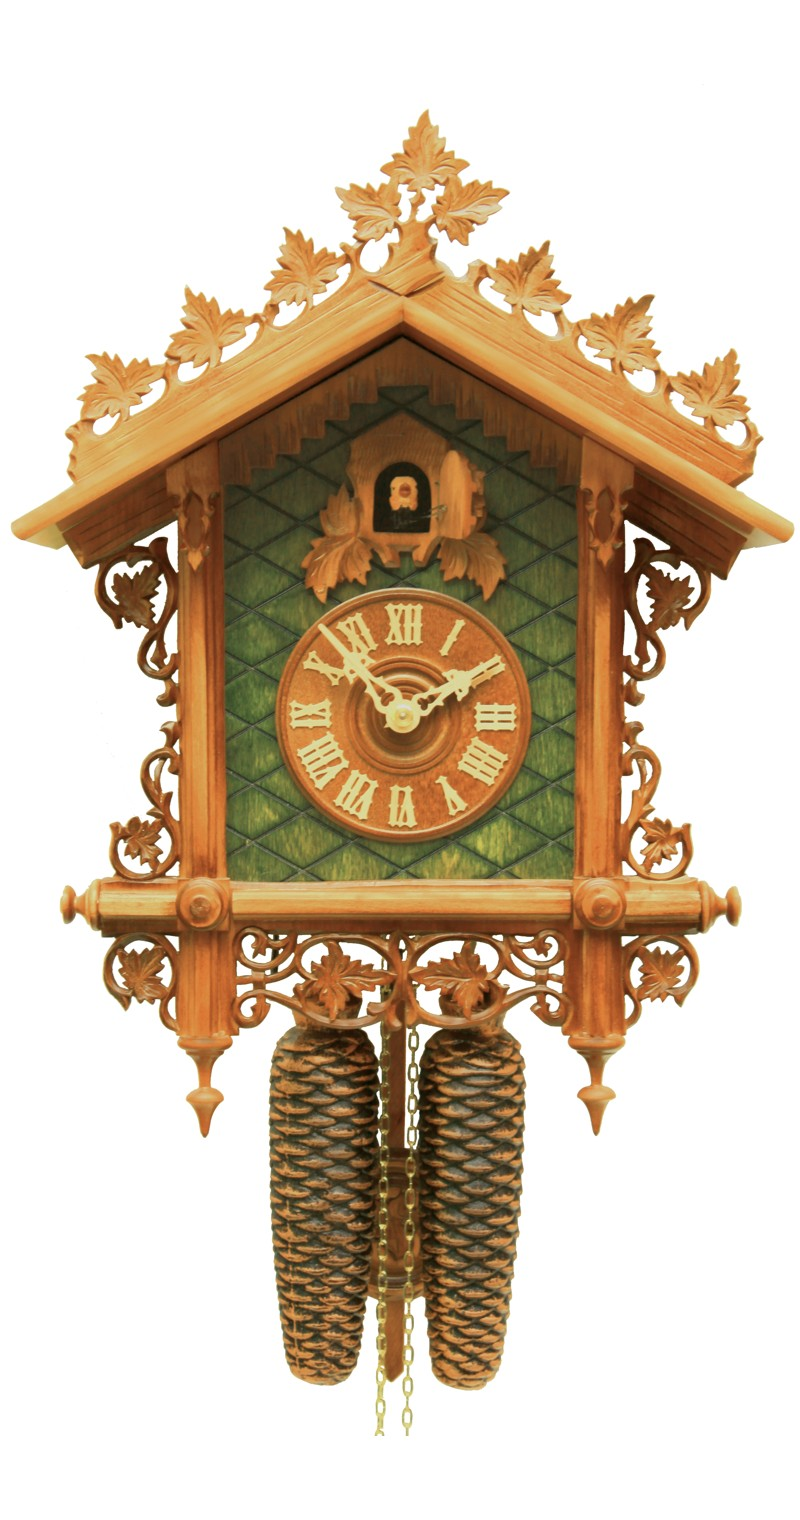 Cuckoo Clock 1885 Replication Green Rail Station Clock 8-Day Movement - Cuckoo Clock Meister